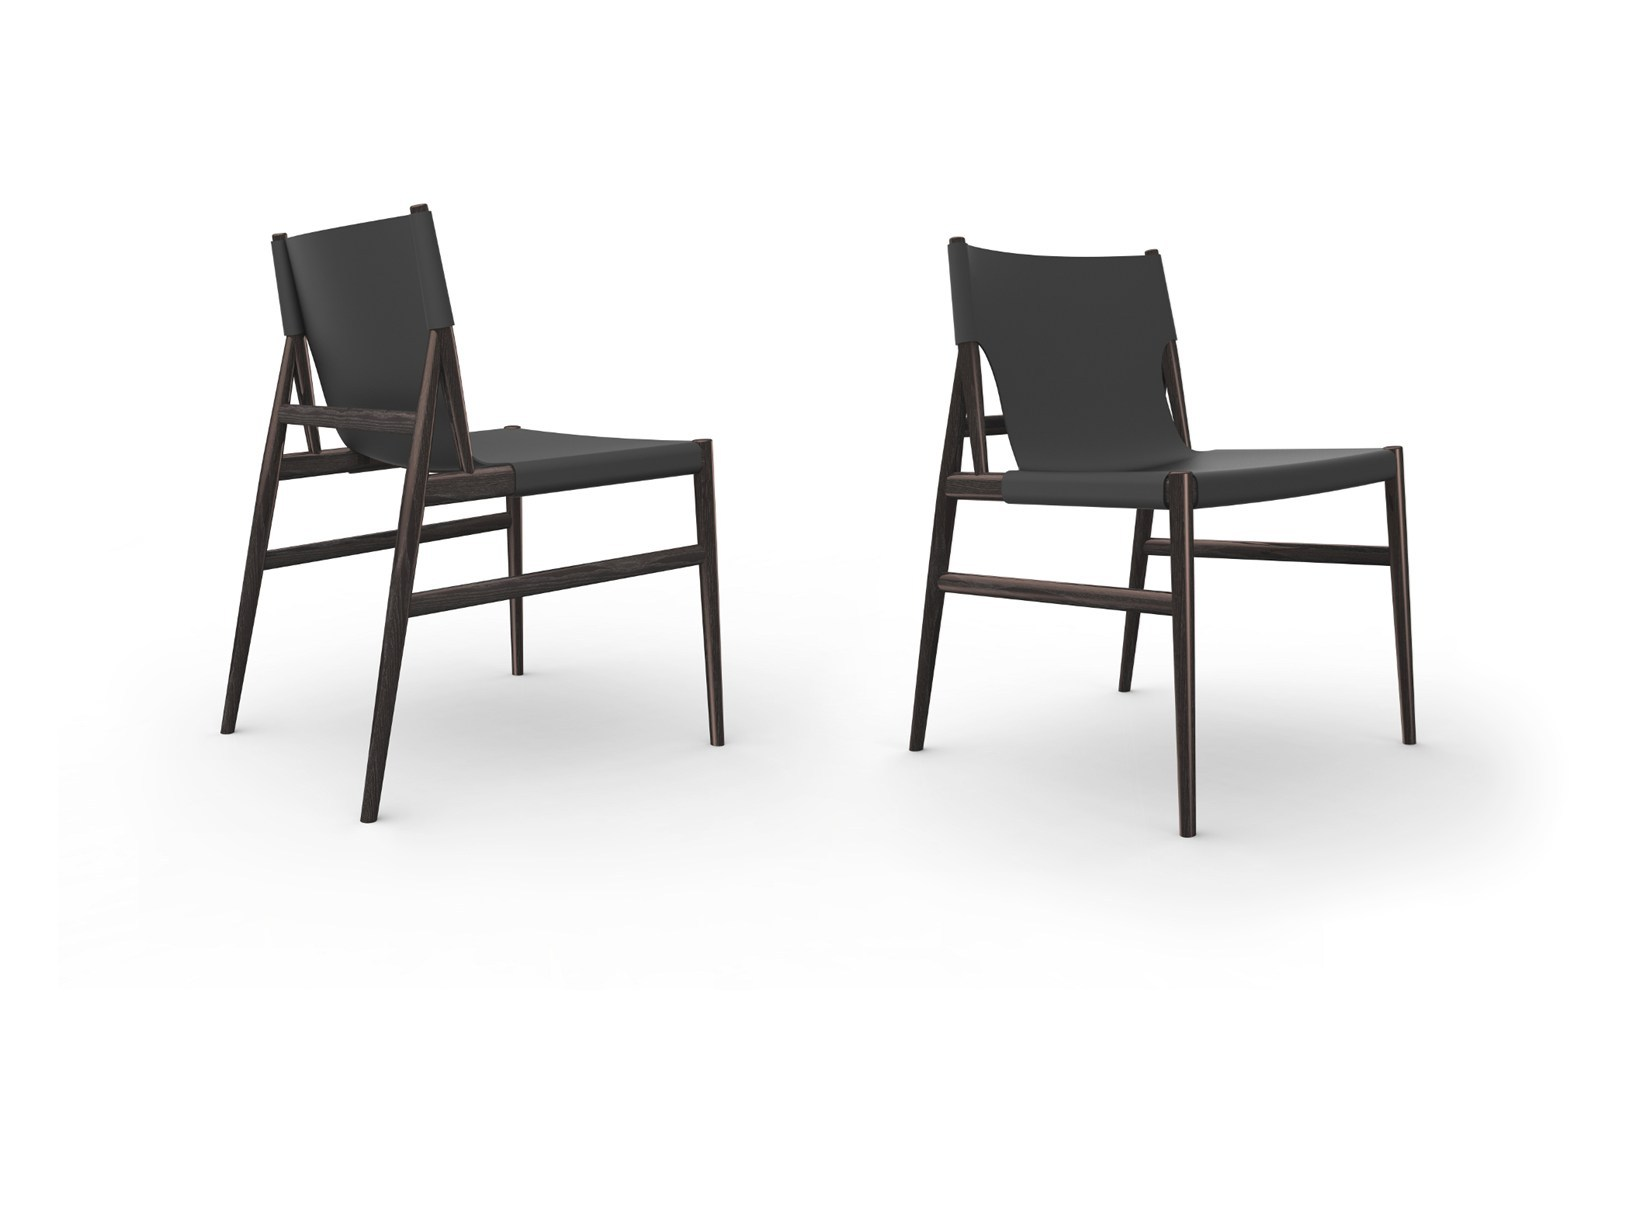 The 'Voyage'chair by GamFratesi for Porro is an extension of last years daybed by the same name.